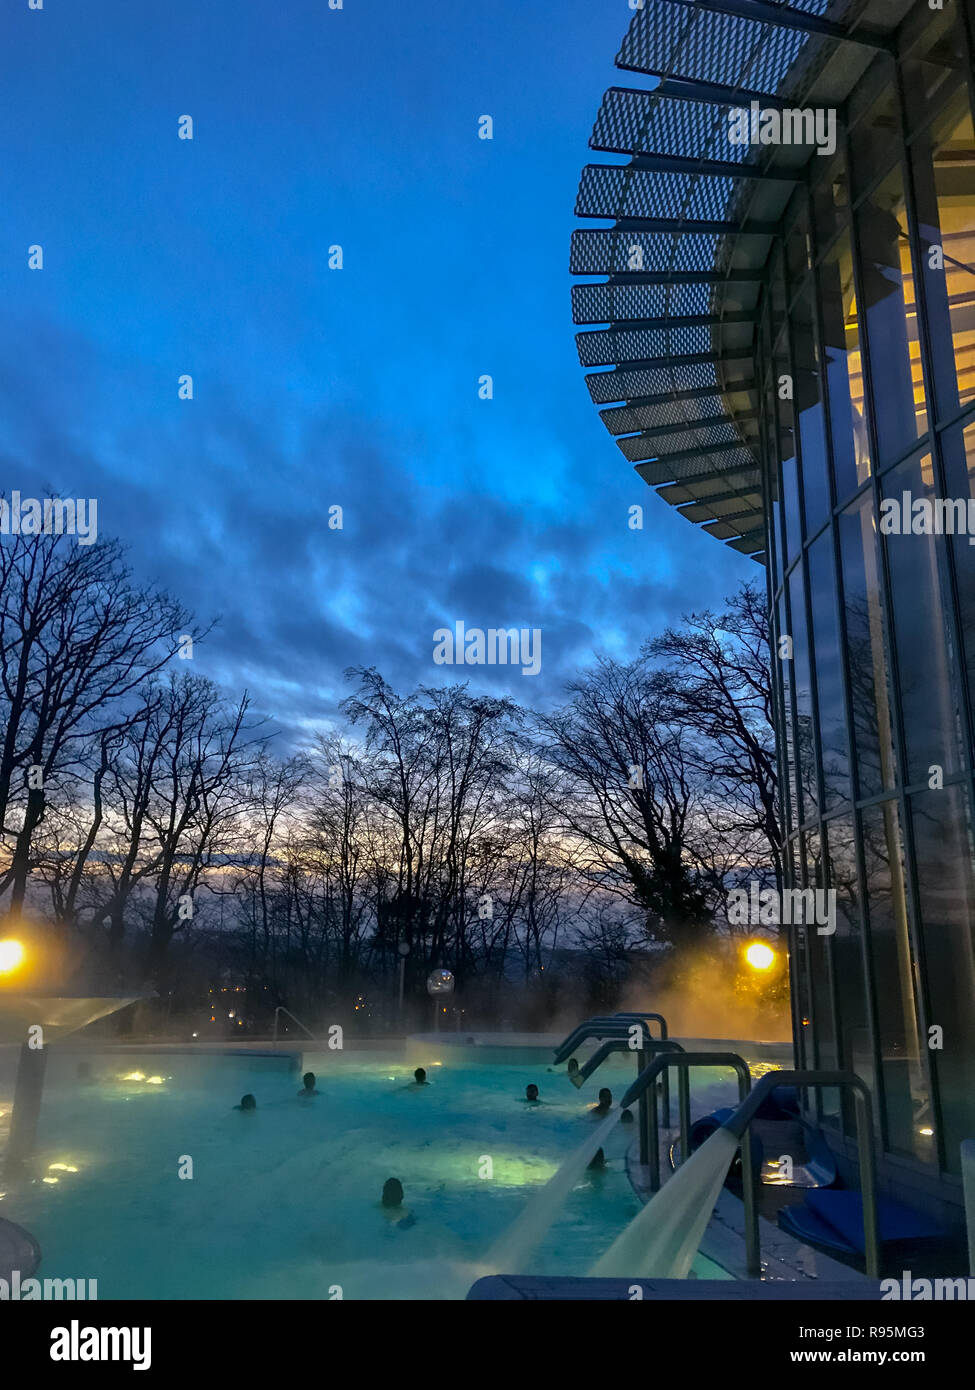 December 2018 - Spa, Belgium: Outdoor pool at the Les Thermes de Spa, the main spa complex of the town Spa, during blue hour. Stock Photo